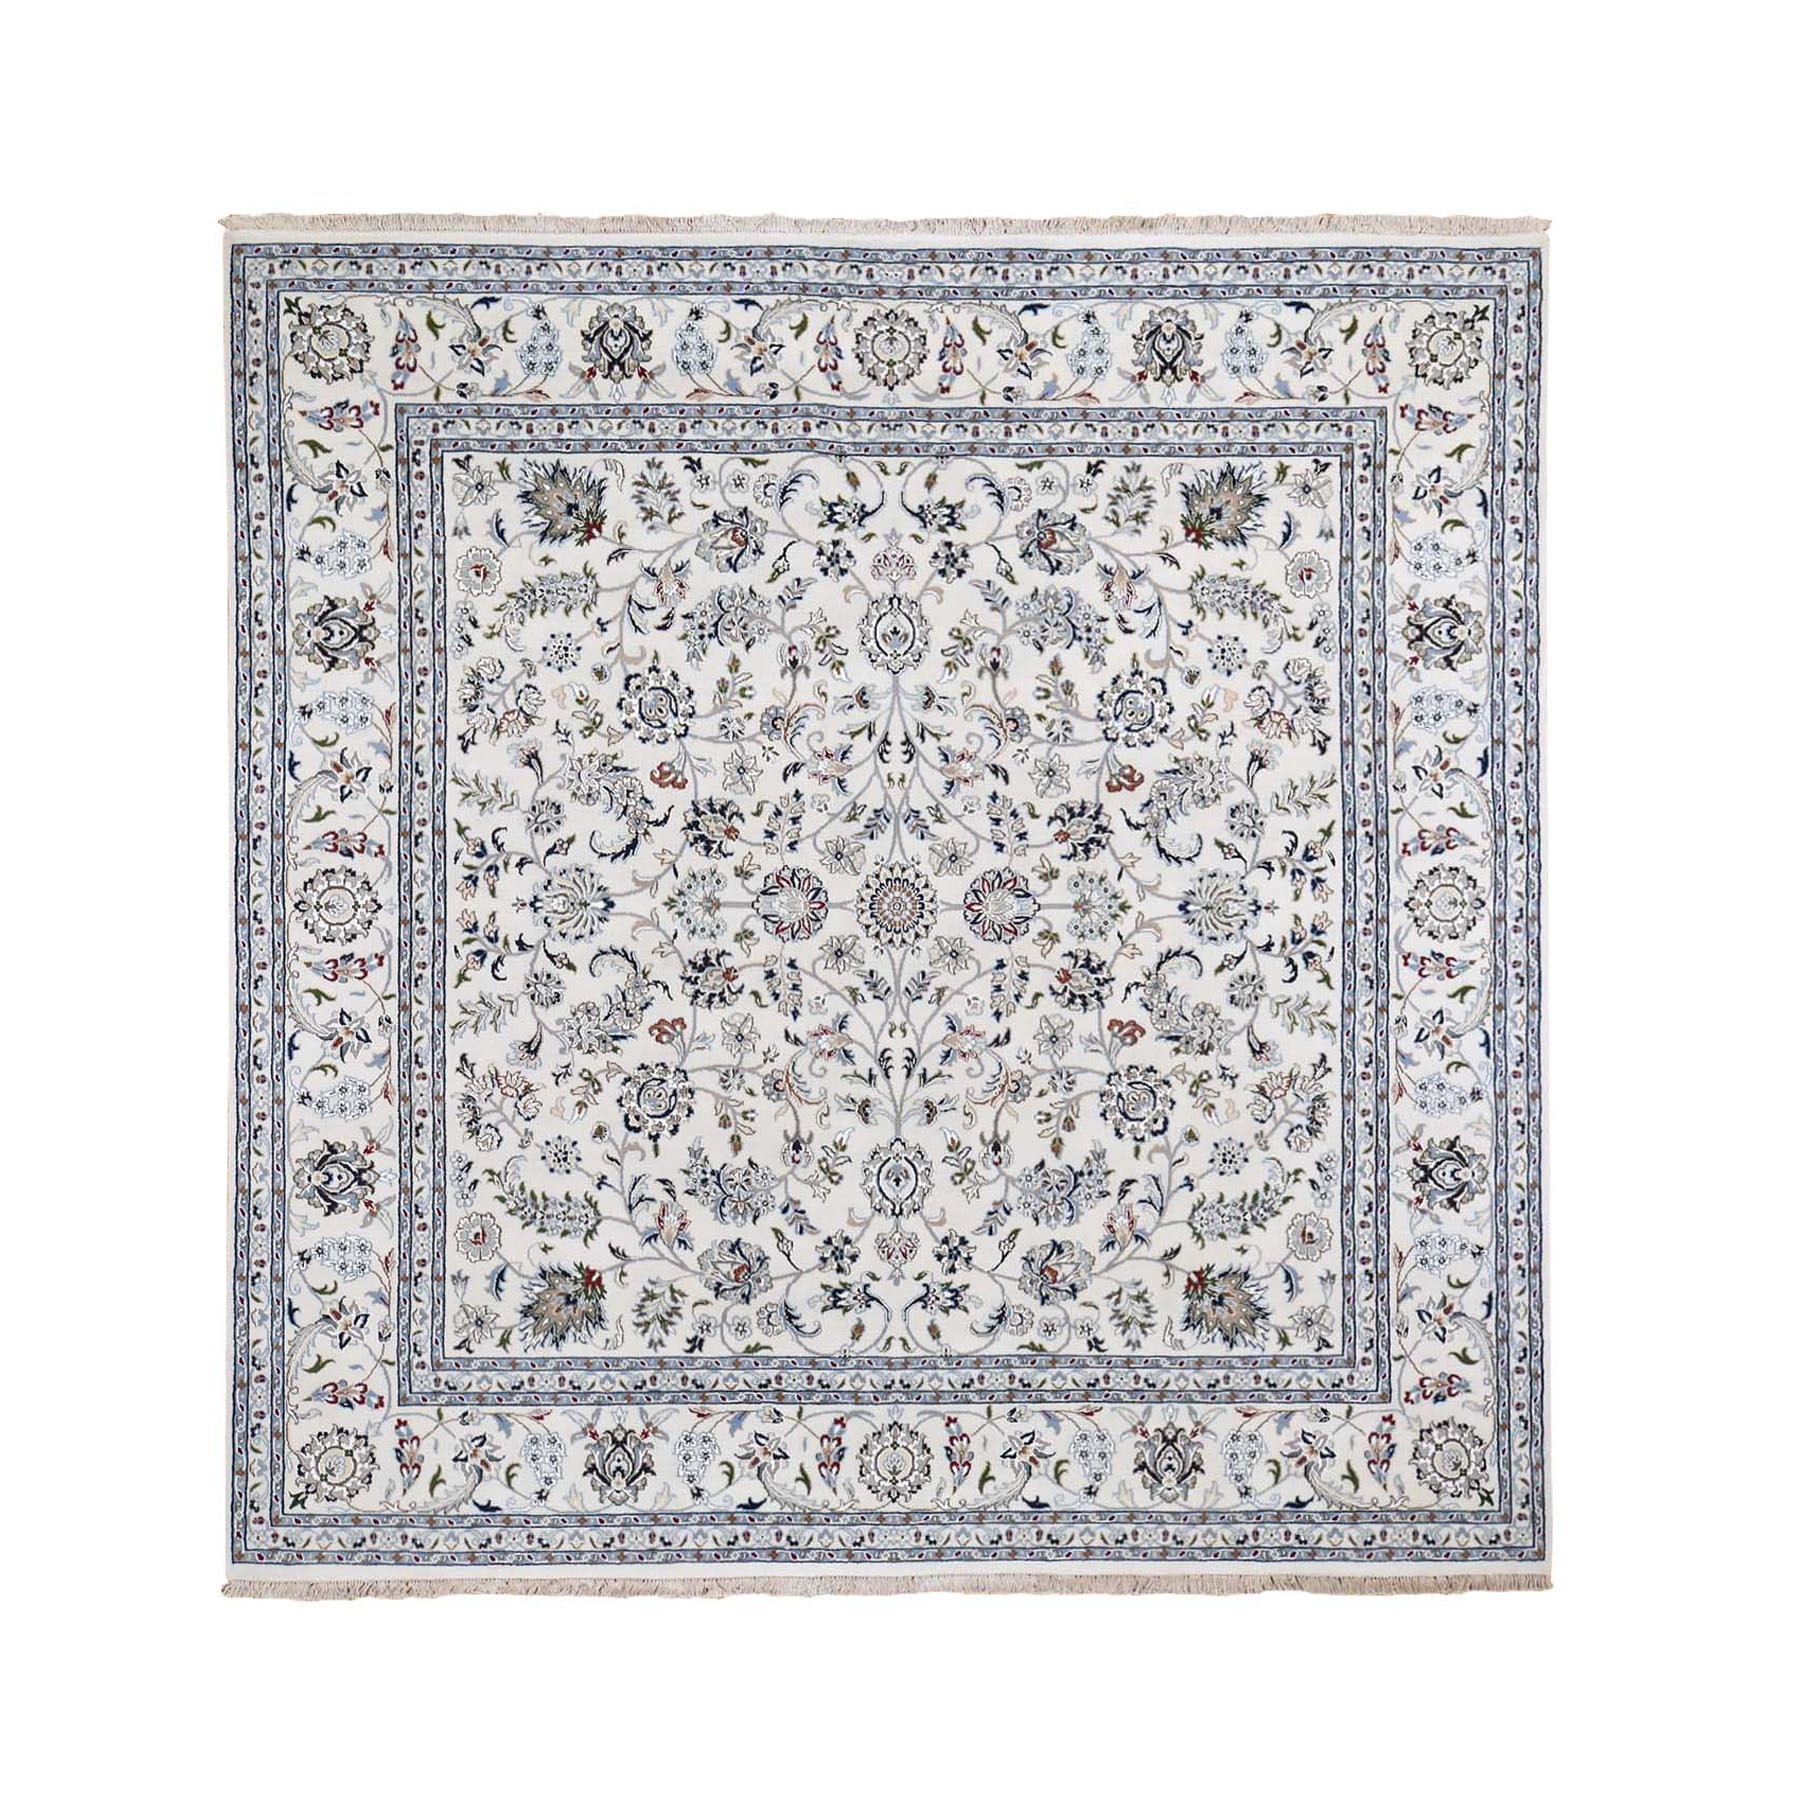 10'X10' Square Wool And Silk 250 Kpsi All Over Design Ivory Nain Hand Knotted Oriental Rug moad878e